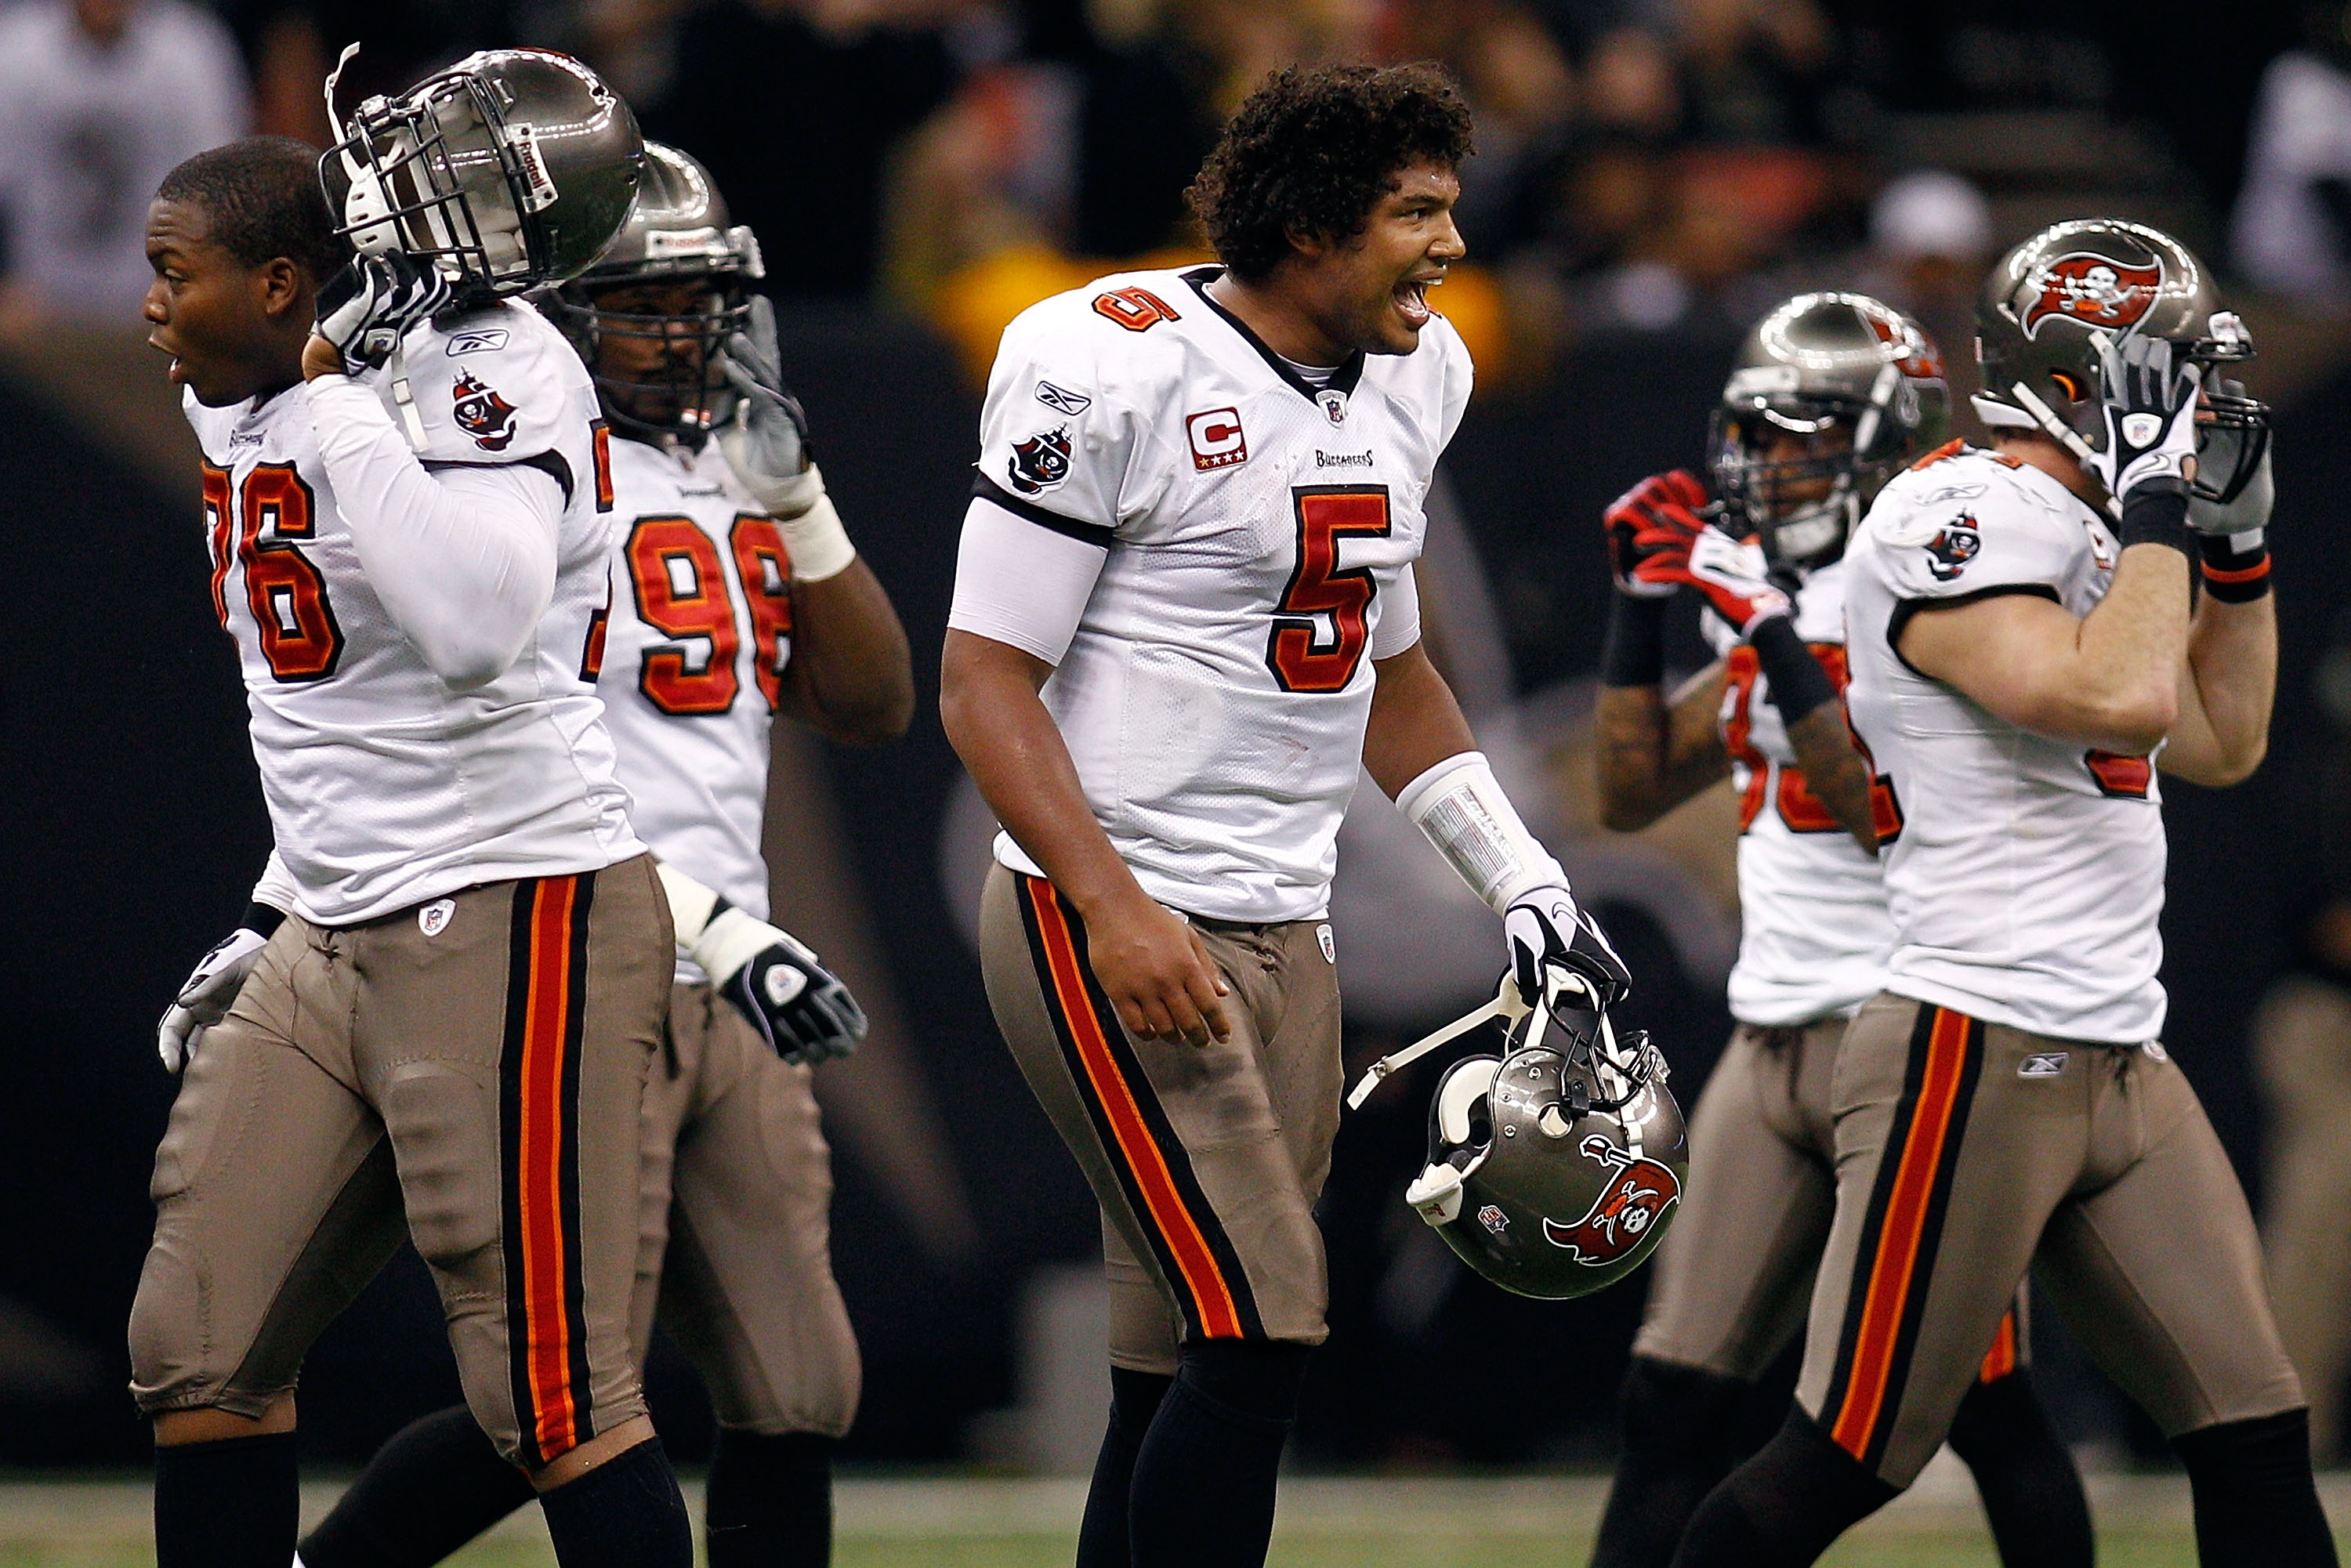 NEW ORLEANS, LA - JANUARY 02:  Josh Freeman #5 of the Tampa Bay Buccaneers reacts to being sacked during the game against the New Orleans Saints at the Louisiana Superdome on January 2, 2011 in New Orleans, Louisiana.  (Photo by Chris Graythen/Getty Image